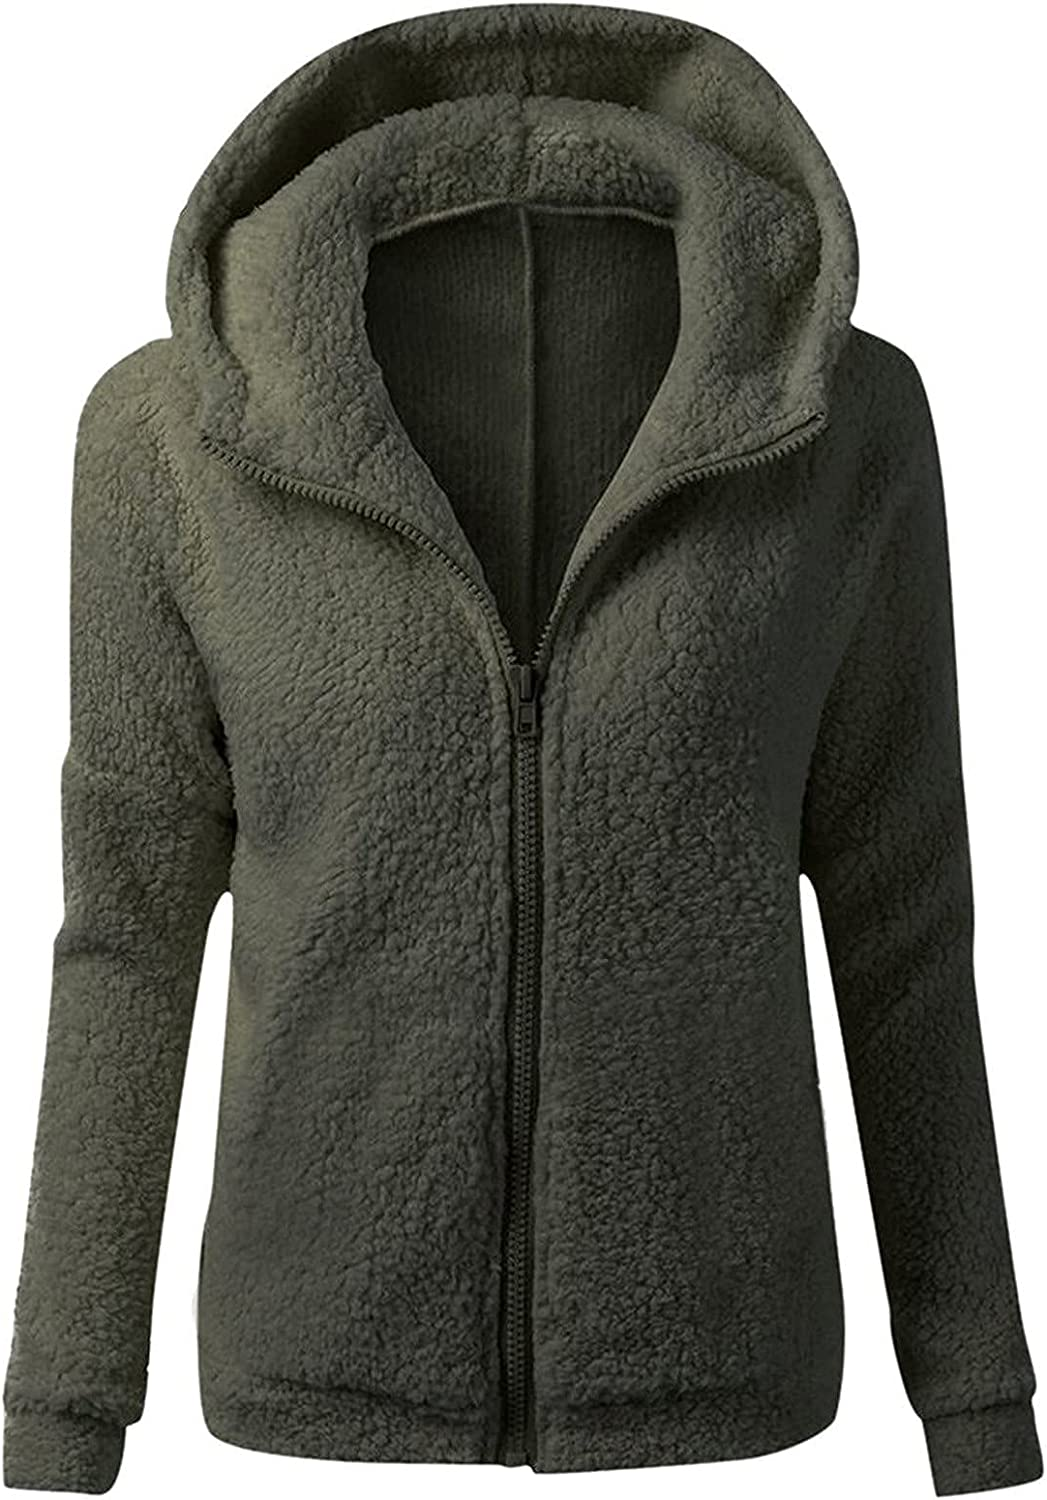 Kanzd Zip Up Jackets Ranking TOP11 Hoodies for Fashion Long Trend Women Max 87% OFF Sleeve